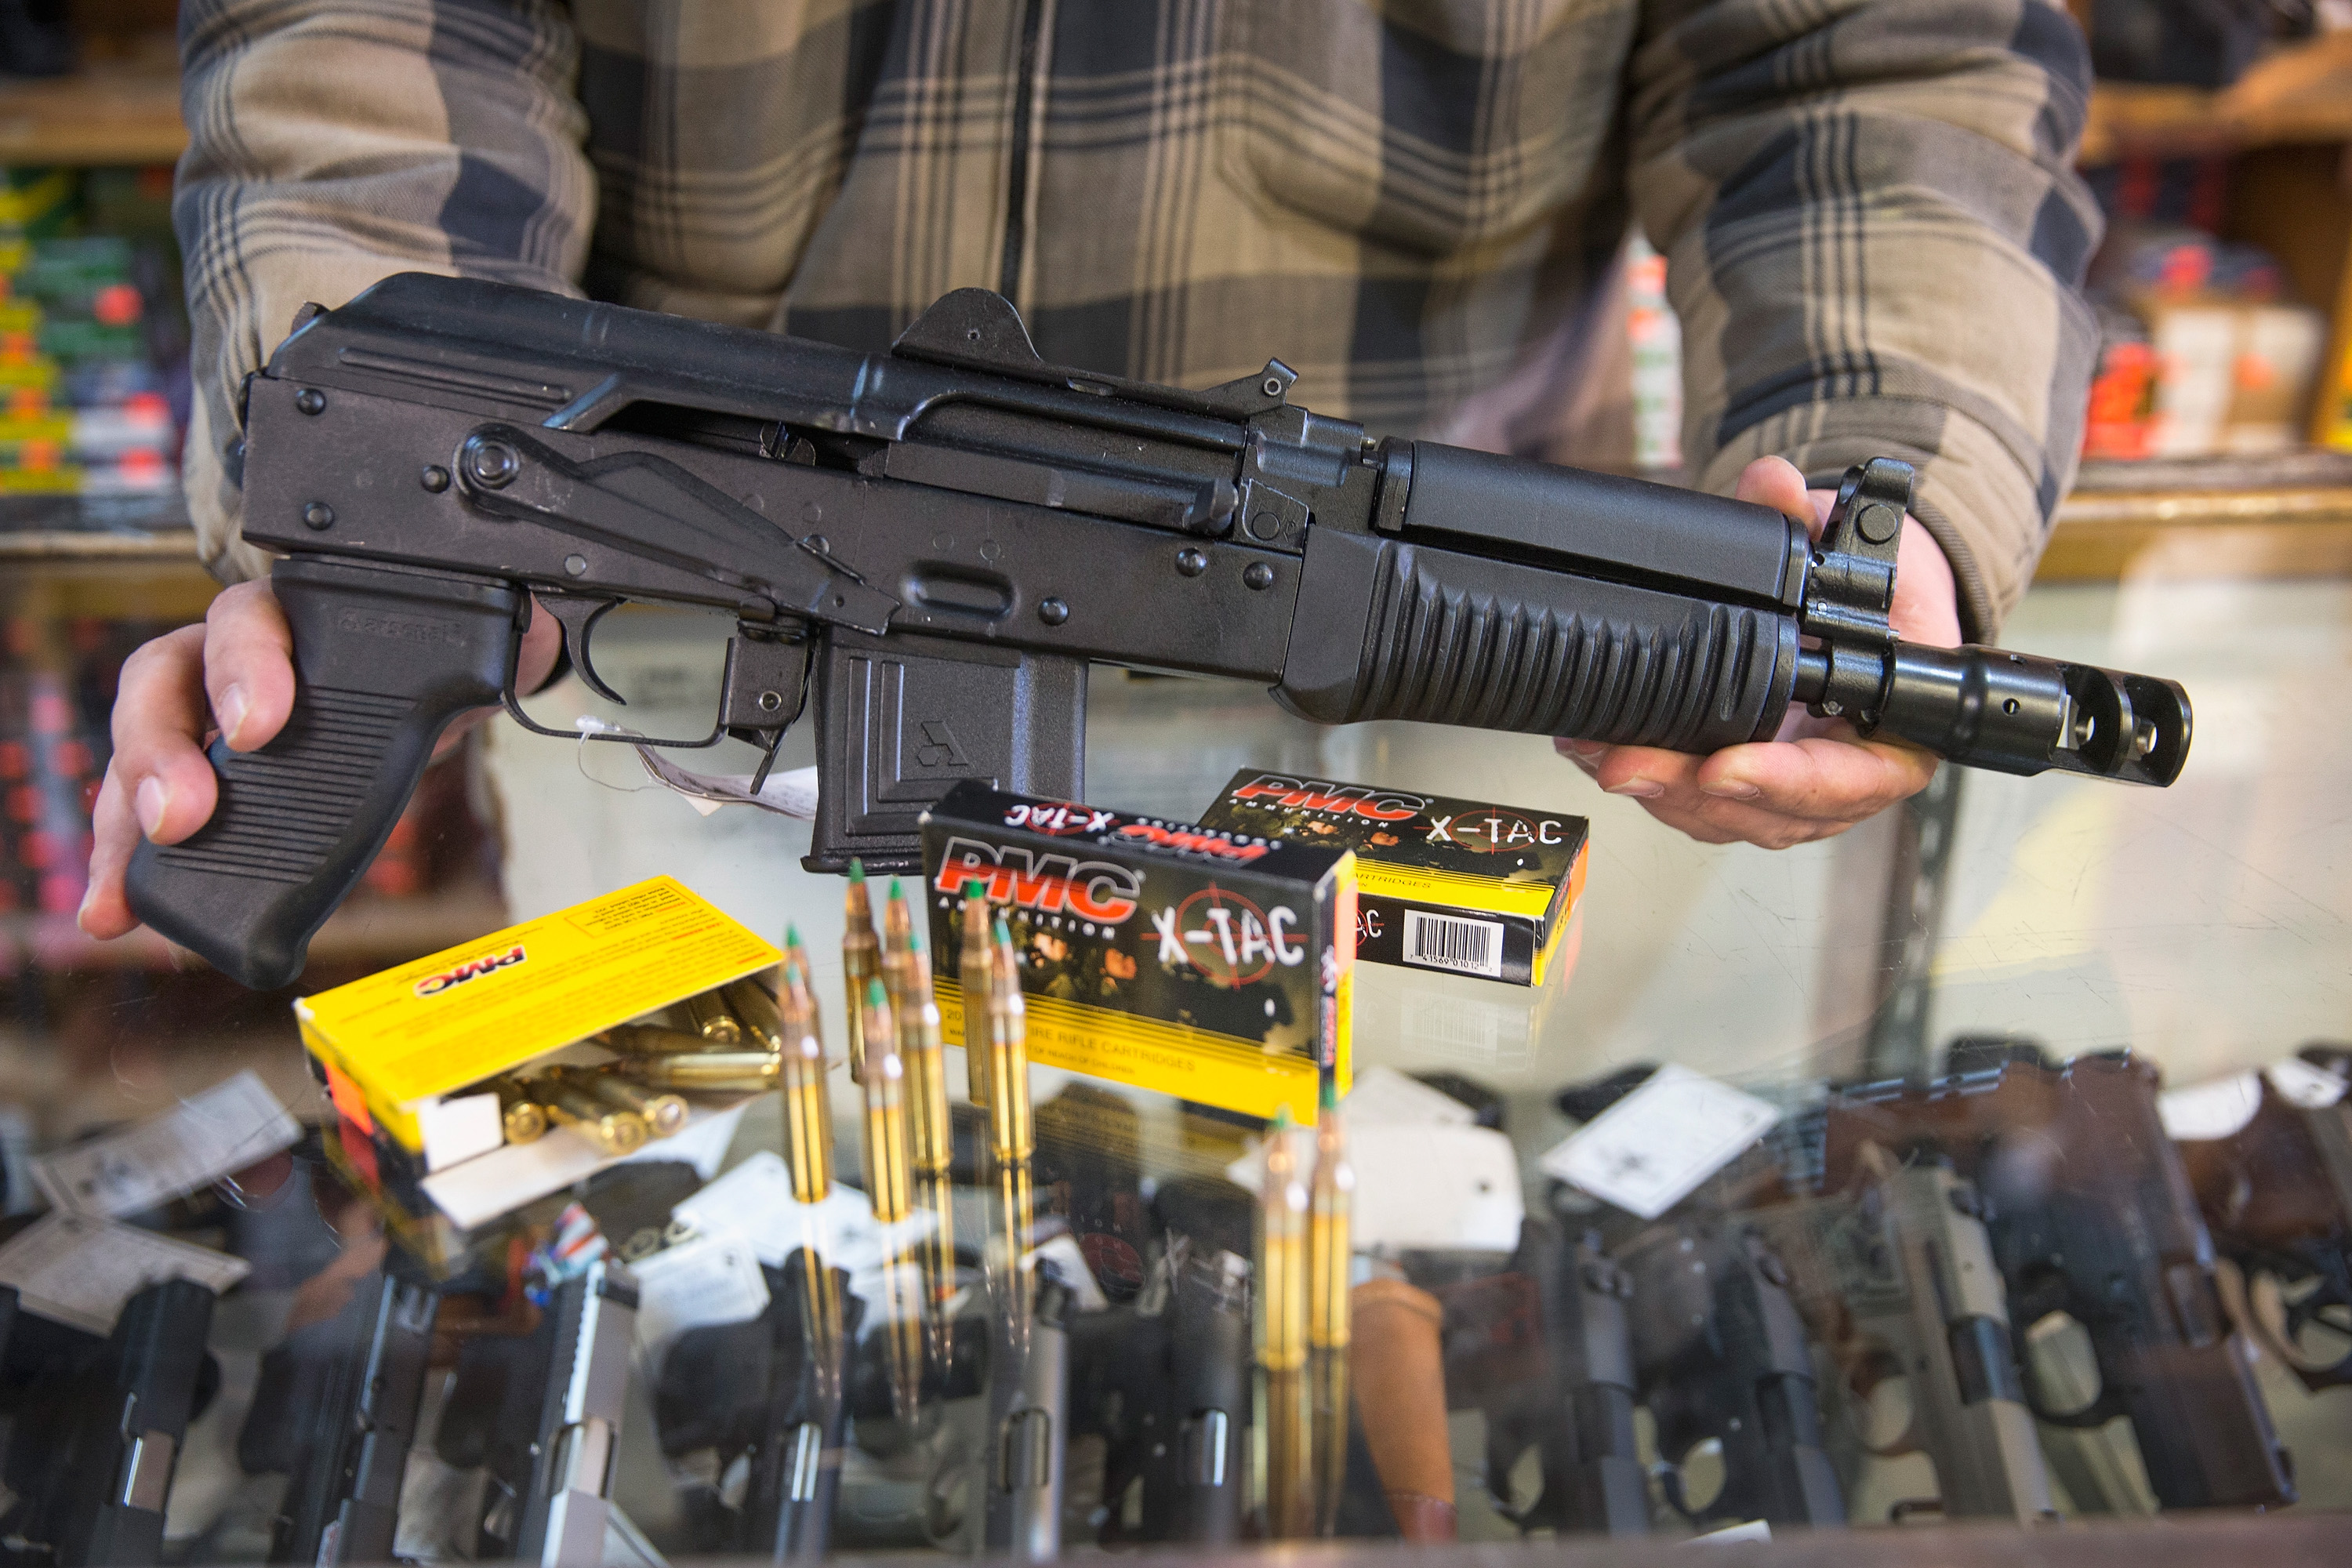 Guns Sales Have Spiked 40% Since Orlando Shooting | Fortune